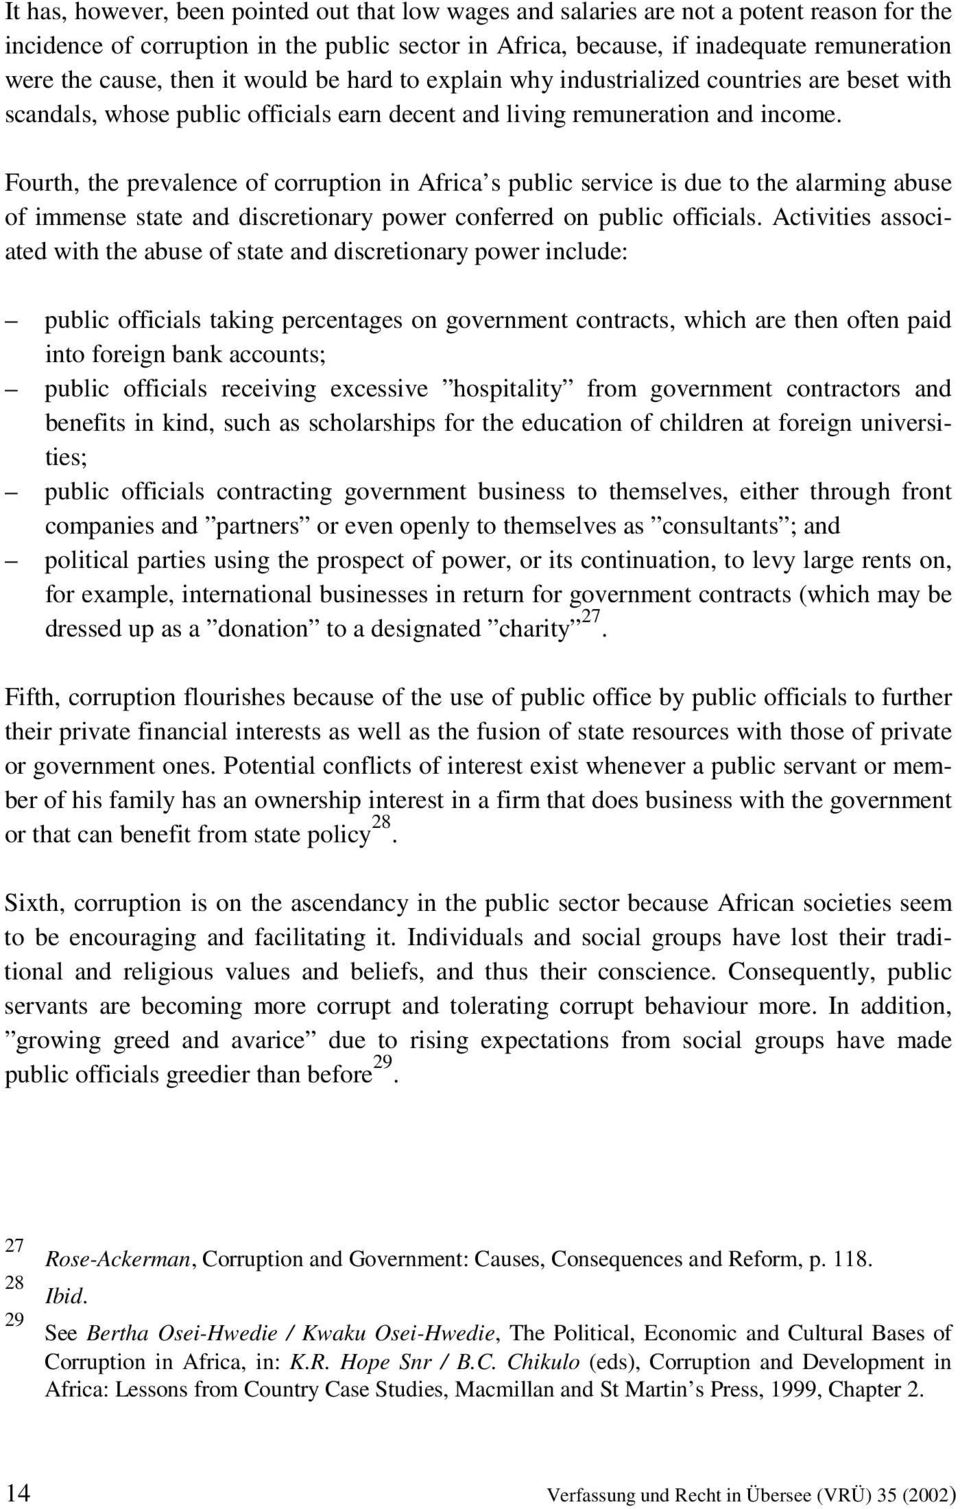 Fourth, the prevalence of corruption in Africa s public service is due to the alarming abuse of immense state and discretionary power conferred on public officials.